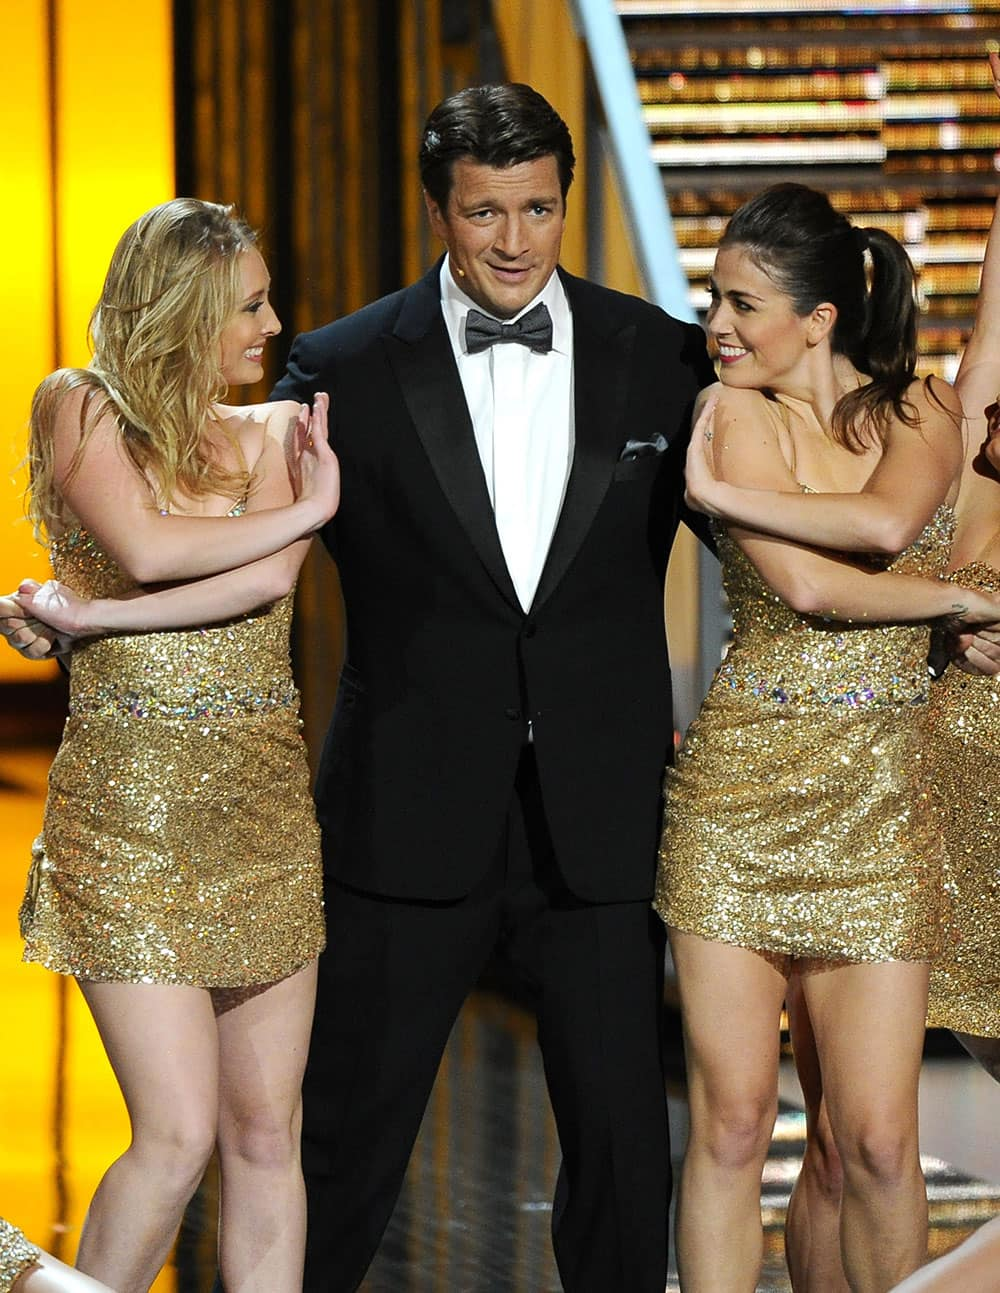 Nathan Fillion performs with dancers on stage at the 65th Primetime Emmy Awards at Nokia Theatre in Los Angeles.